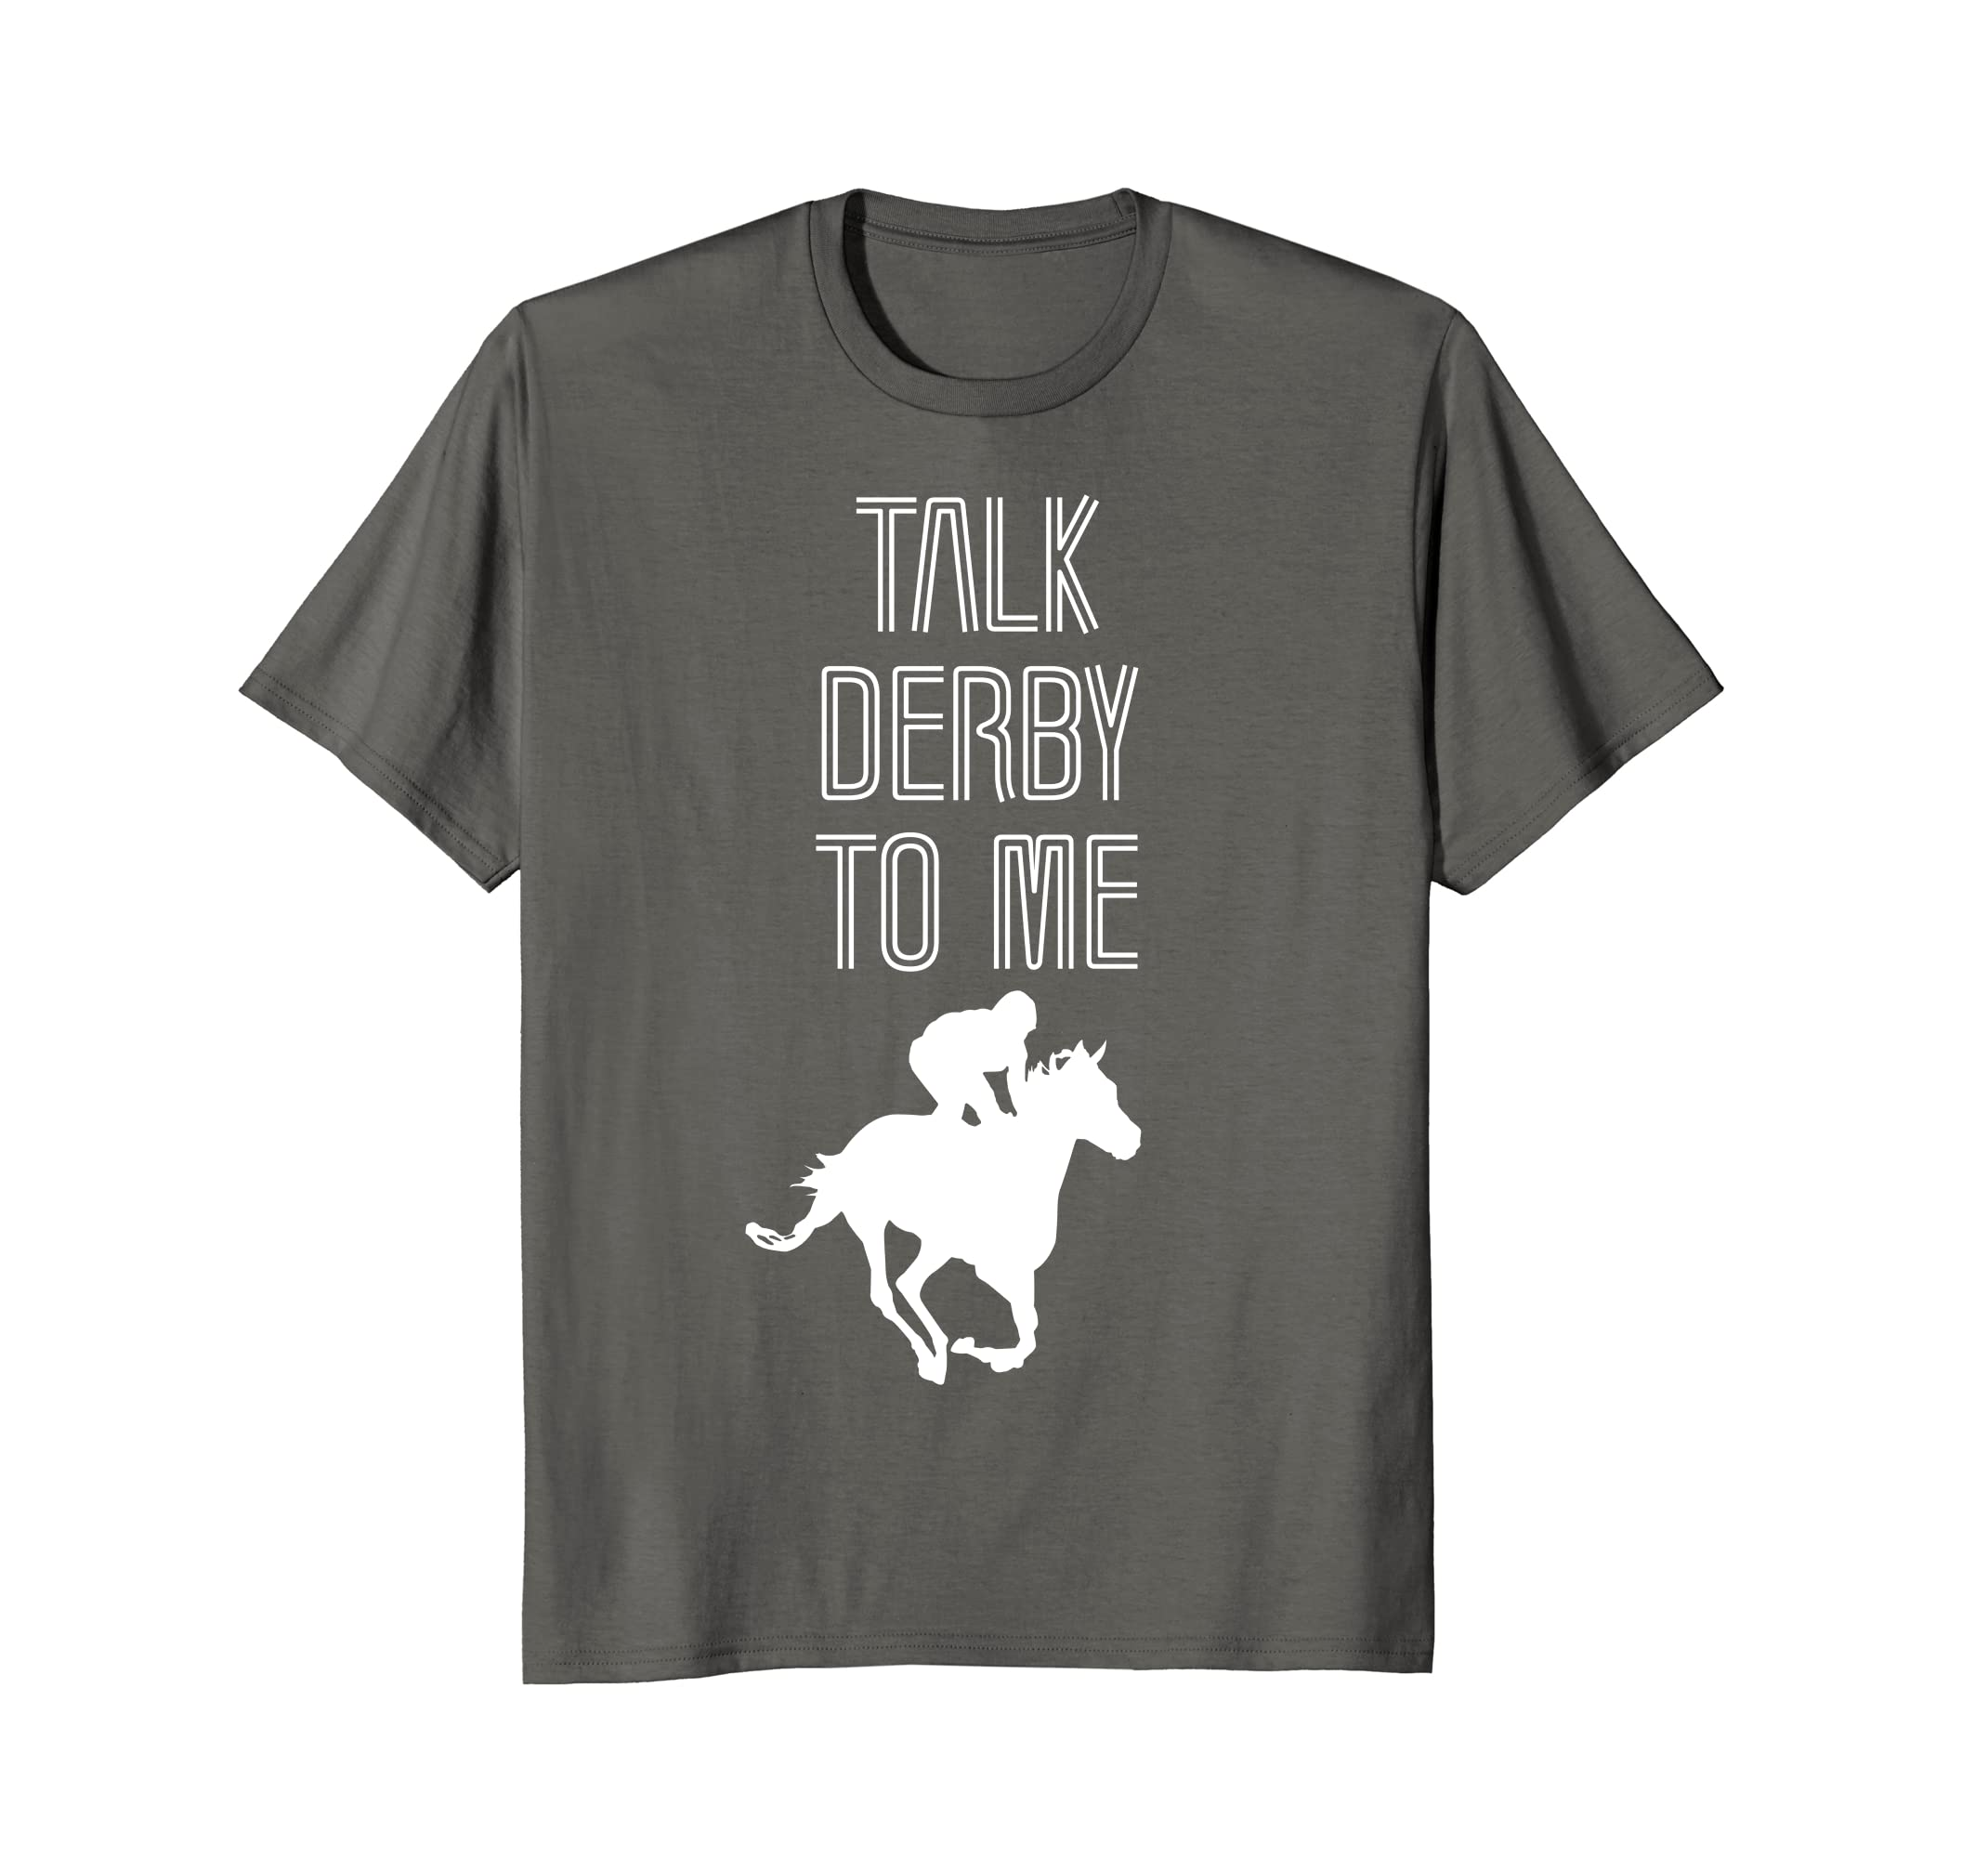 230fd23a3 Amazon.com: Talk Derby to Me Shirt - Funny Horse Racing Tee for Women:  Clothing